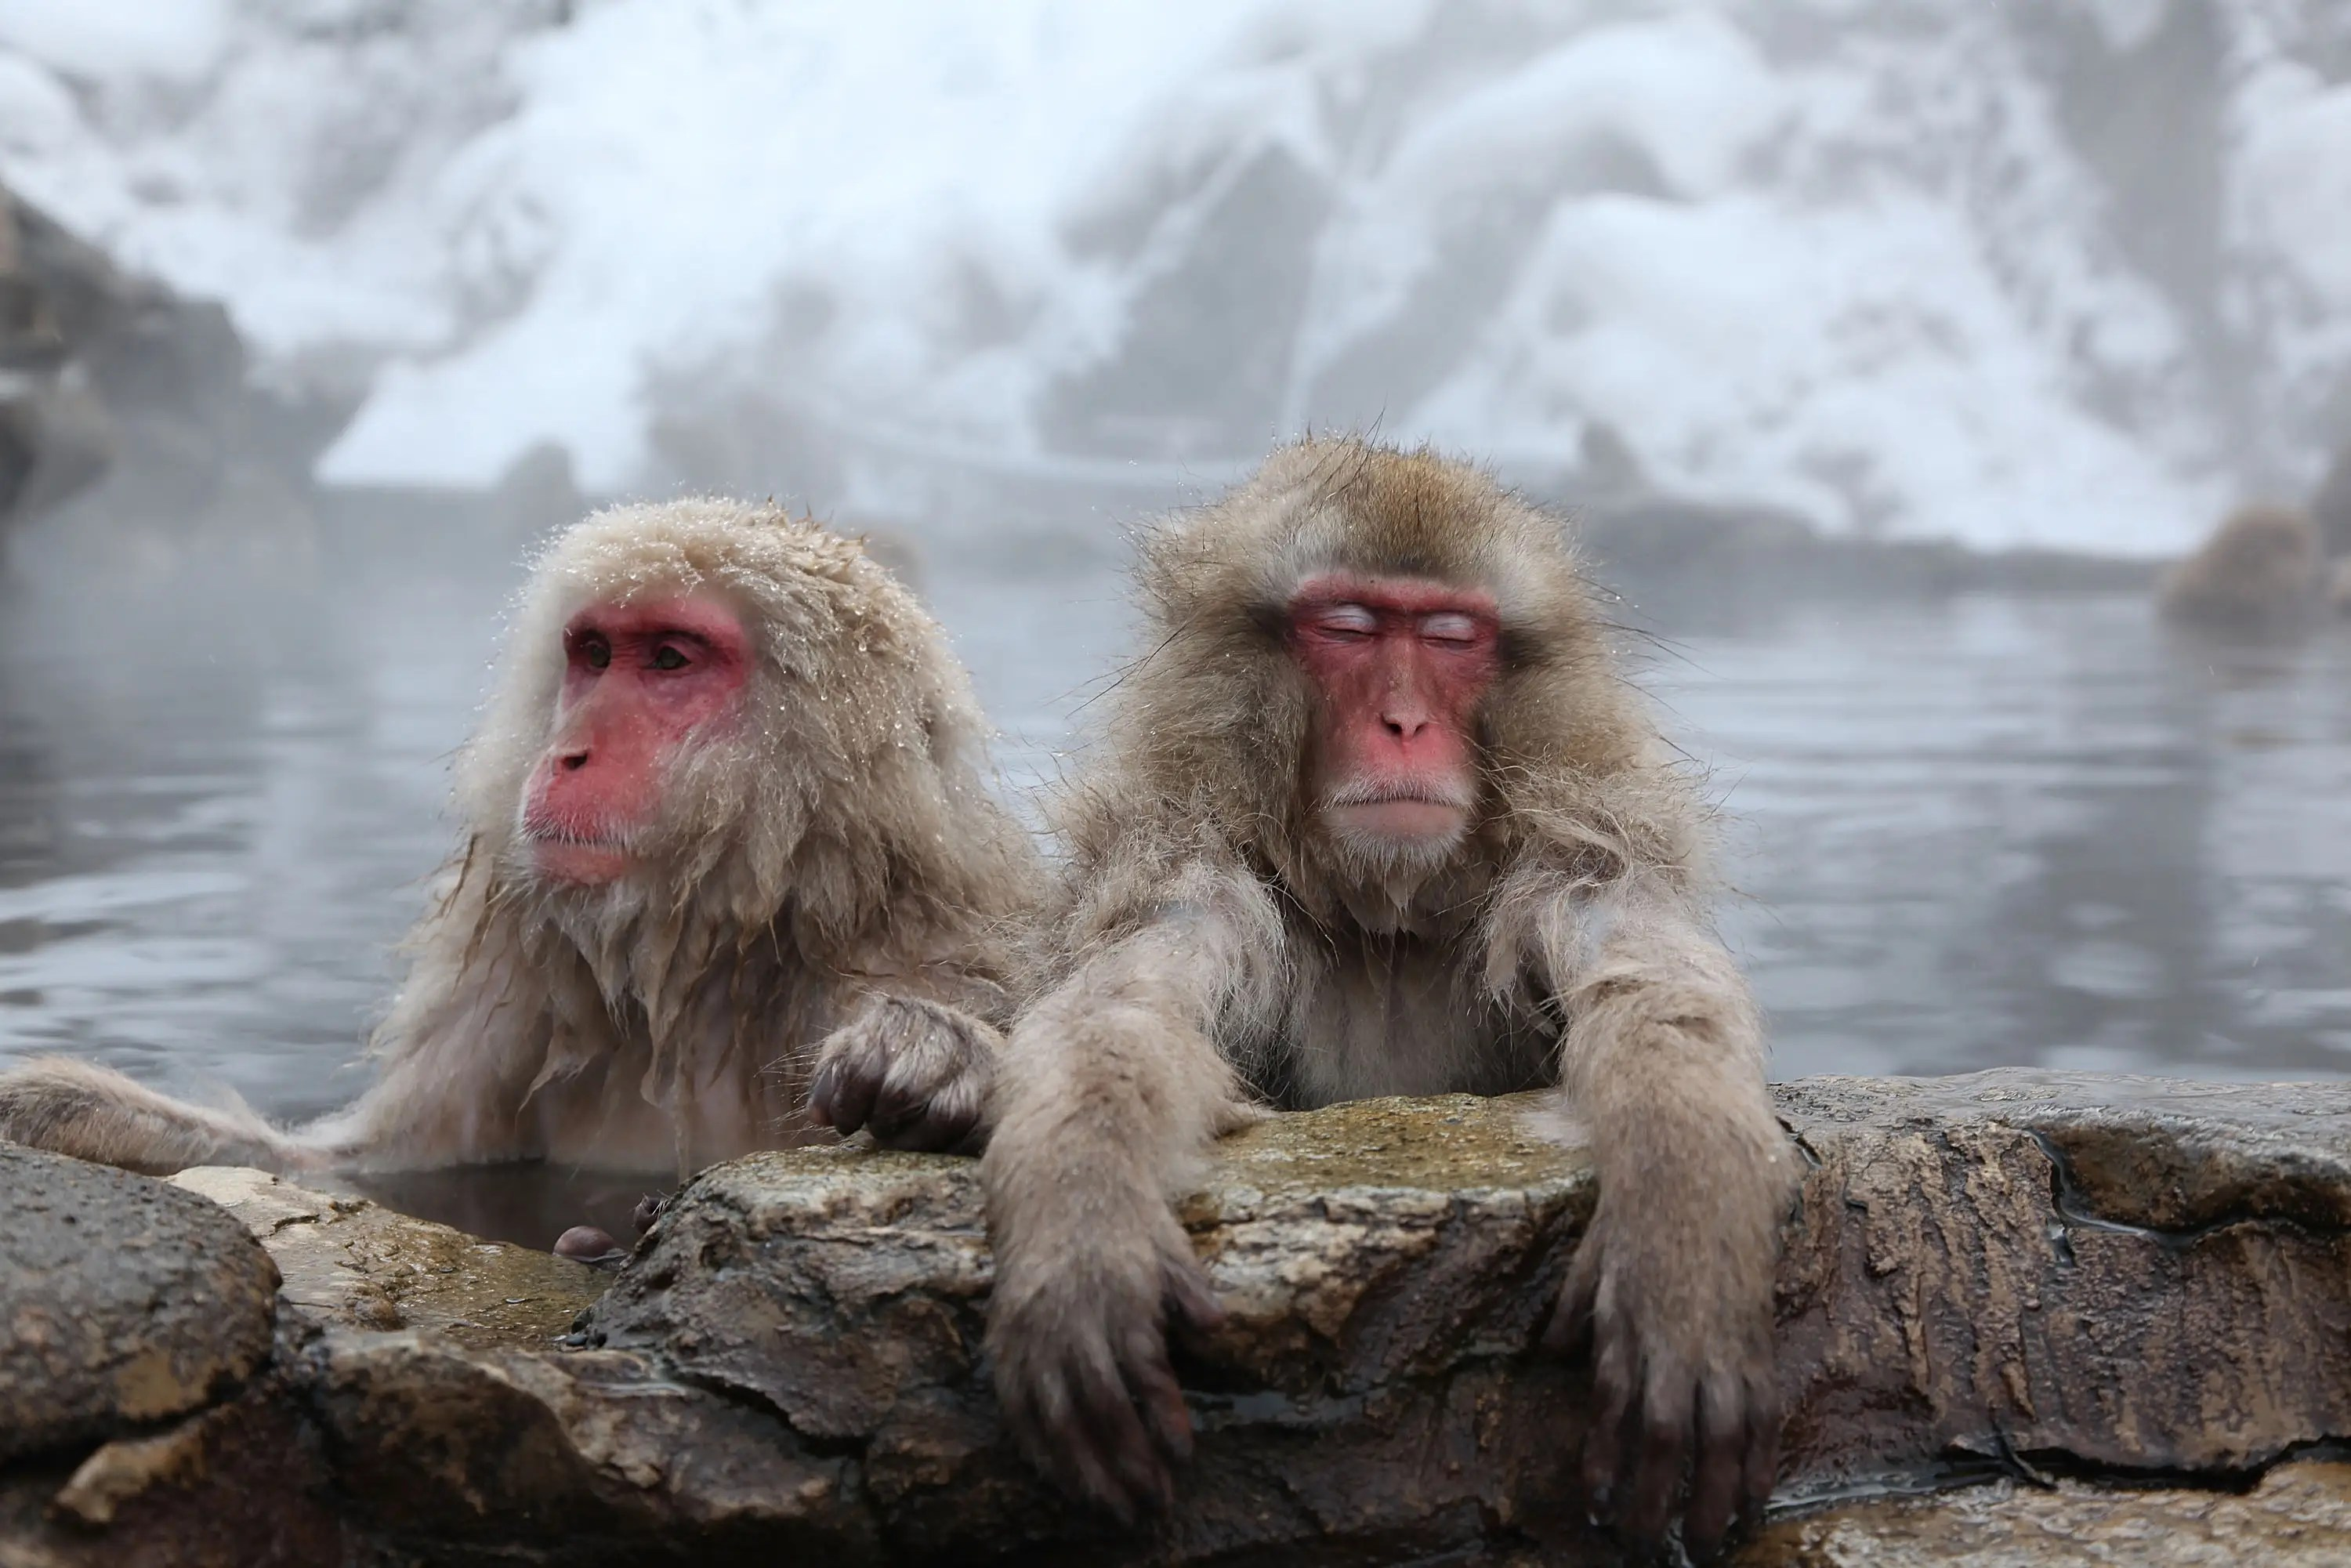 Japanese macaque snow monkey